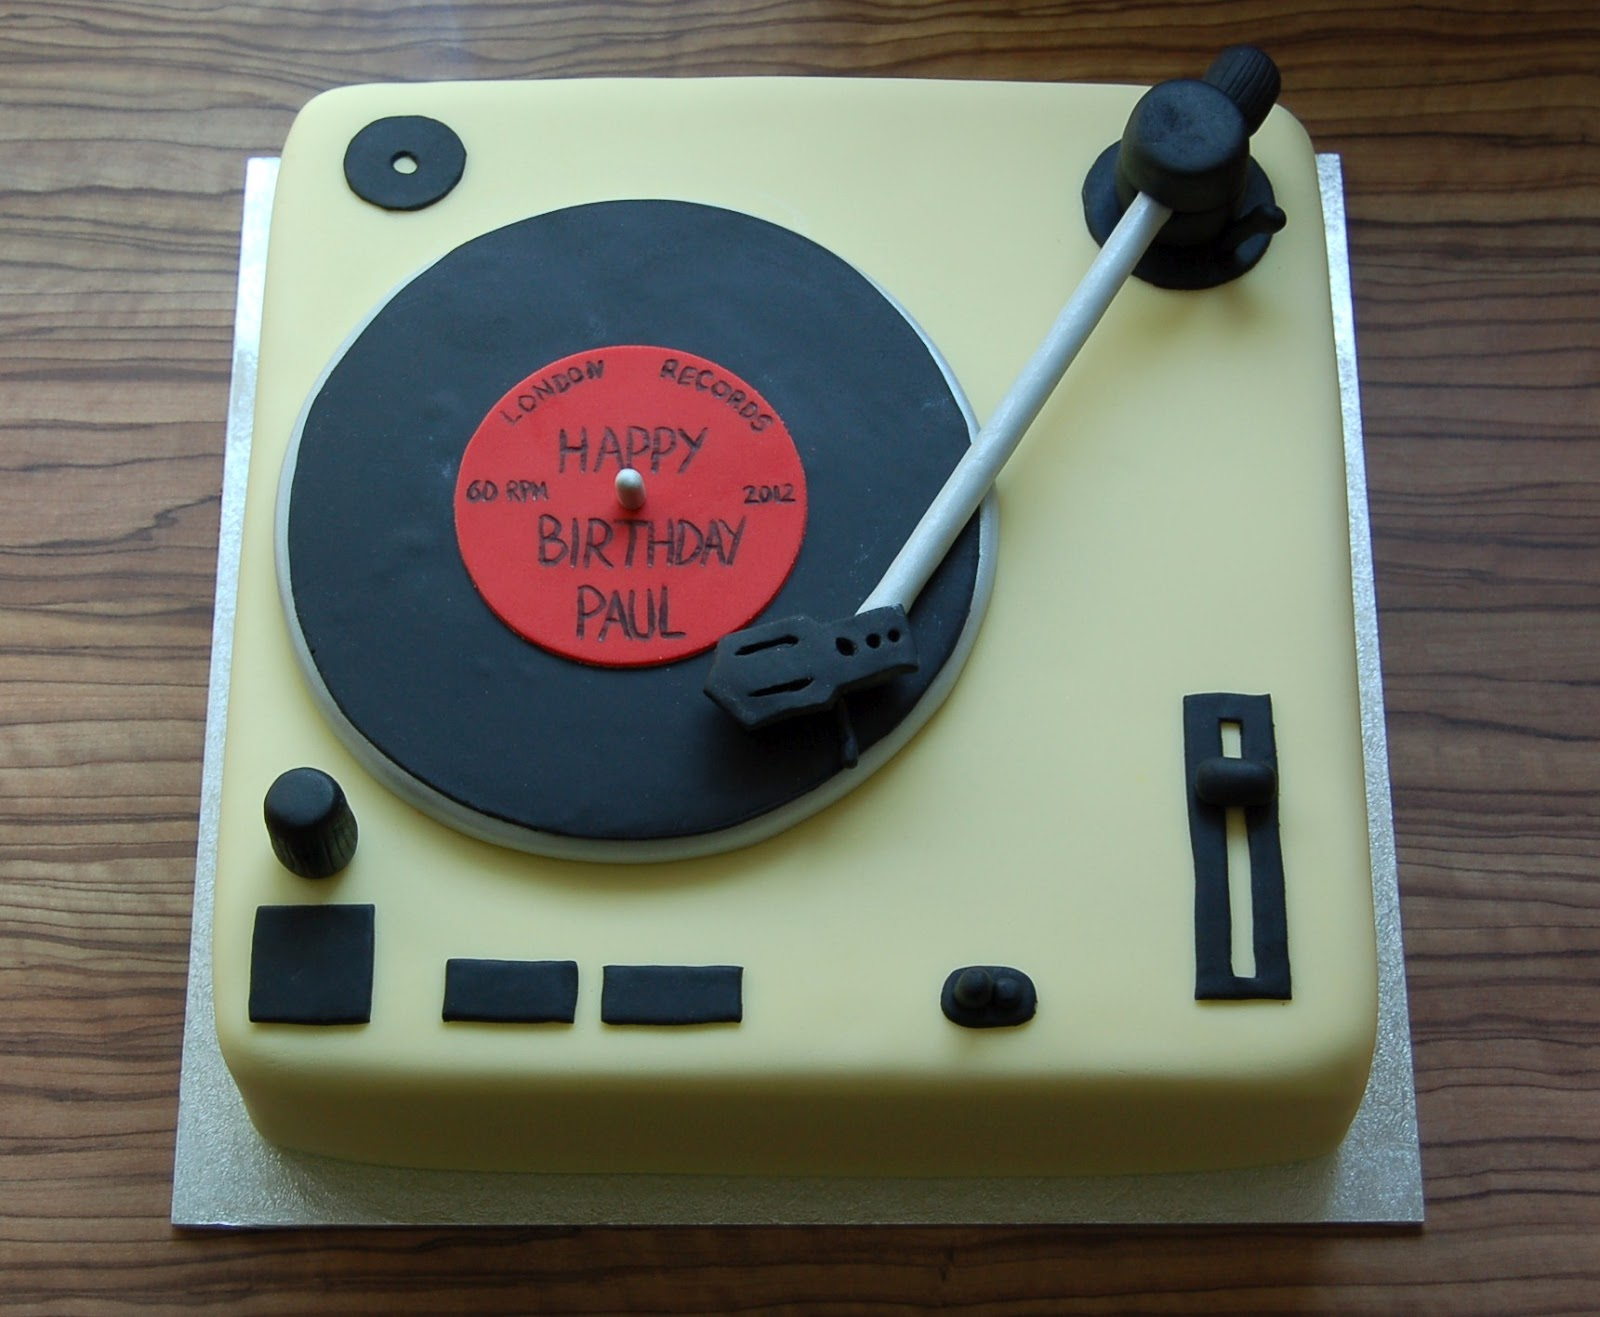 Brighton Baker: Record deck cake - happy 60th birthday Paul!